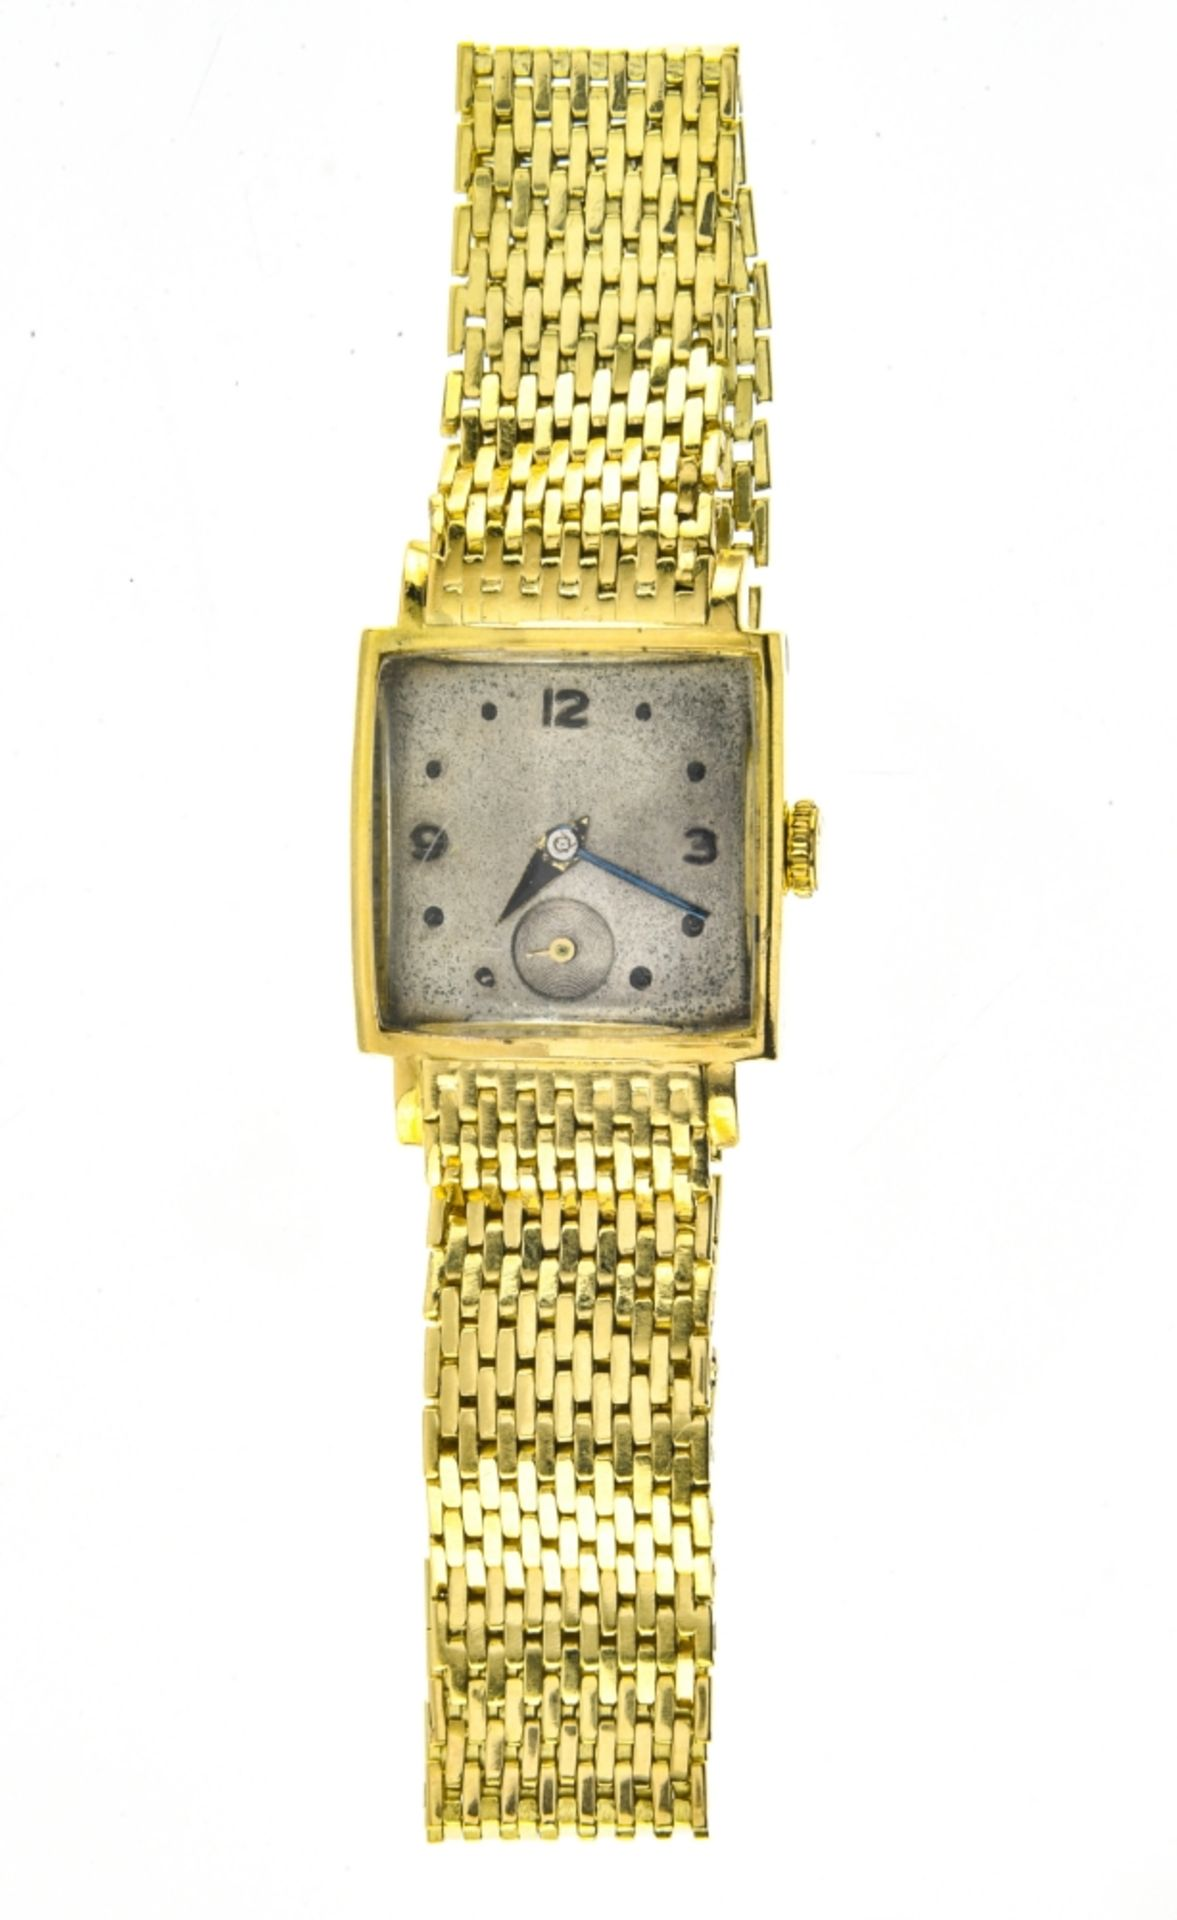 Square, yellow gold bracelet watch 18k yellow gold bracelet watch. Square, 18k yellow gold casing. - Image 2 of 4